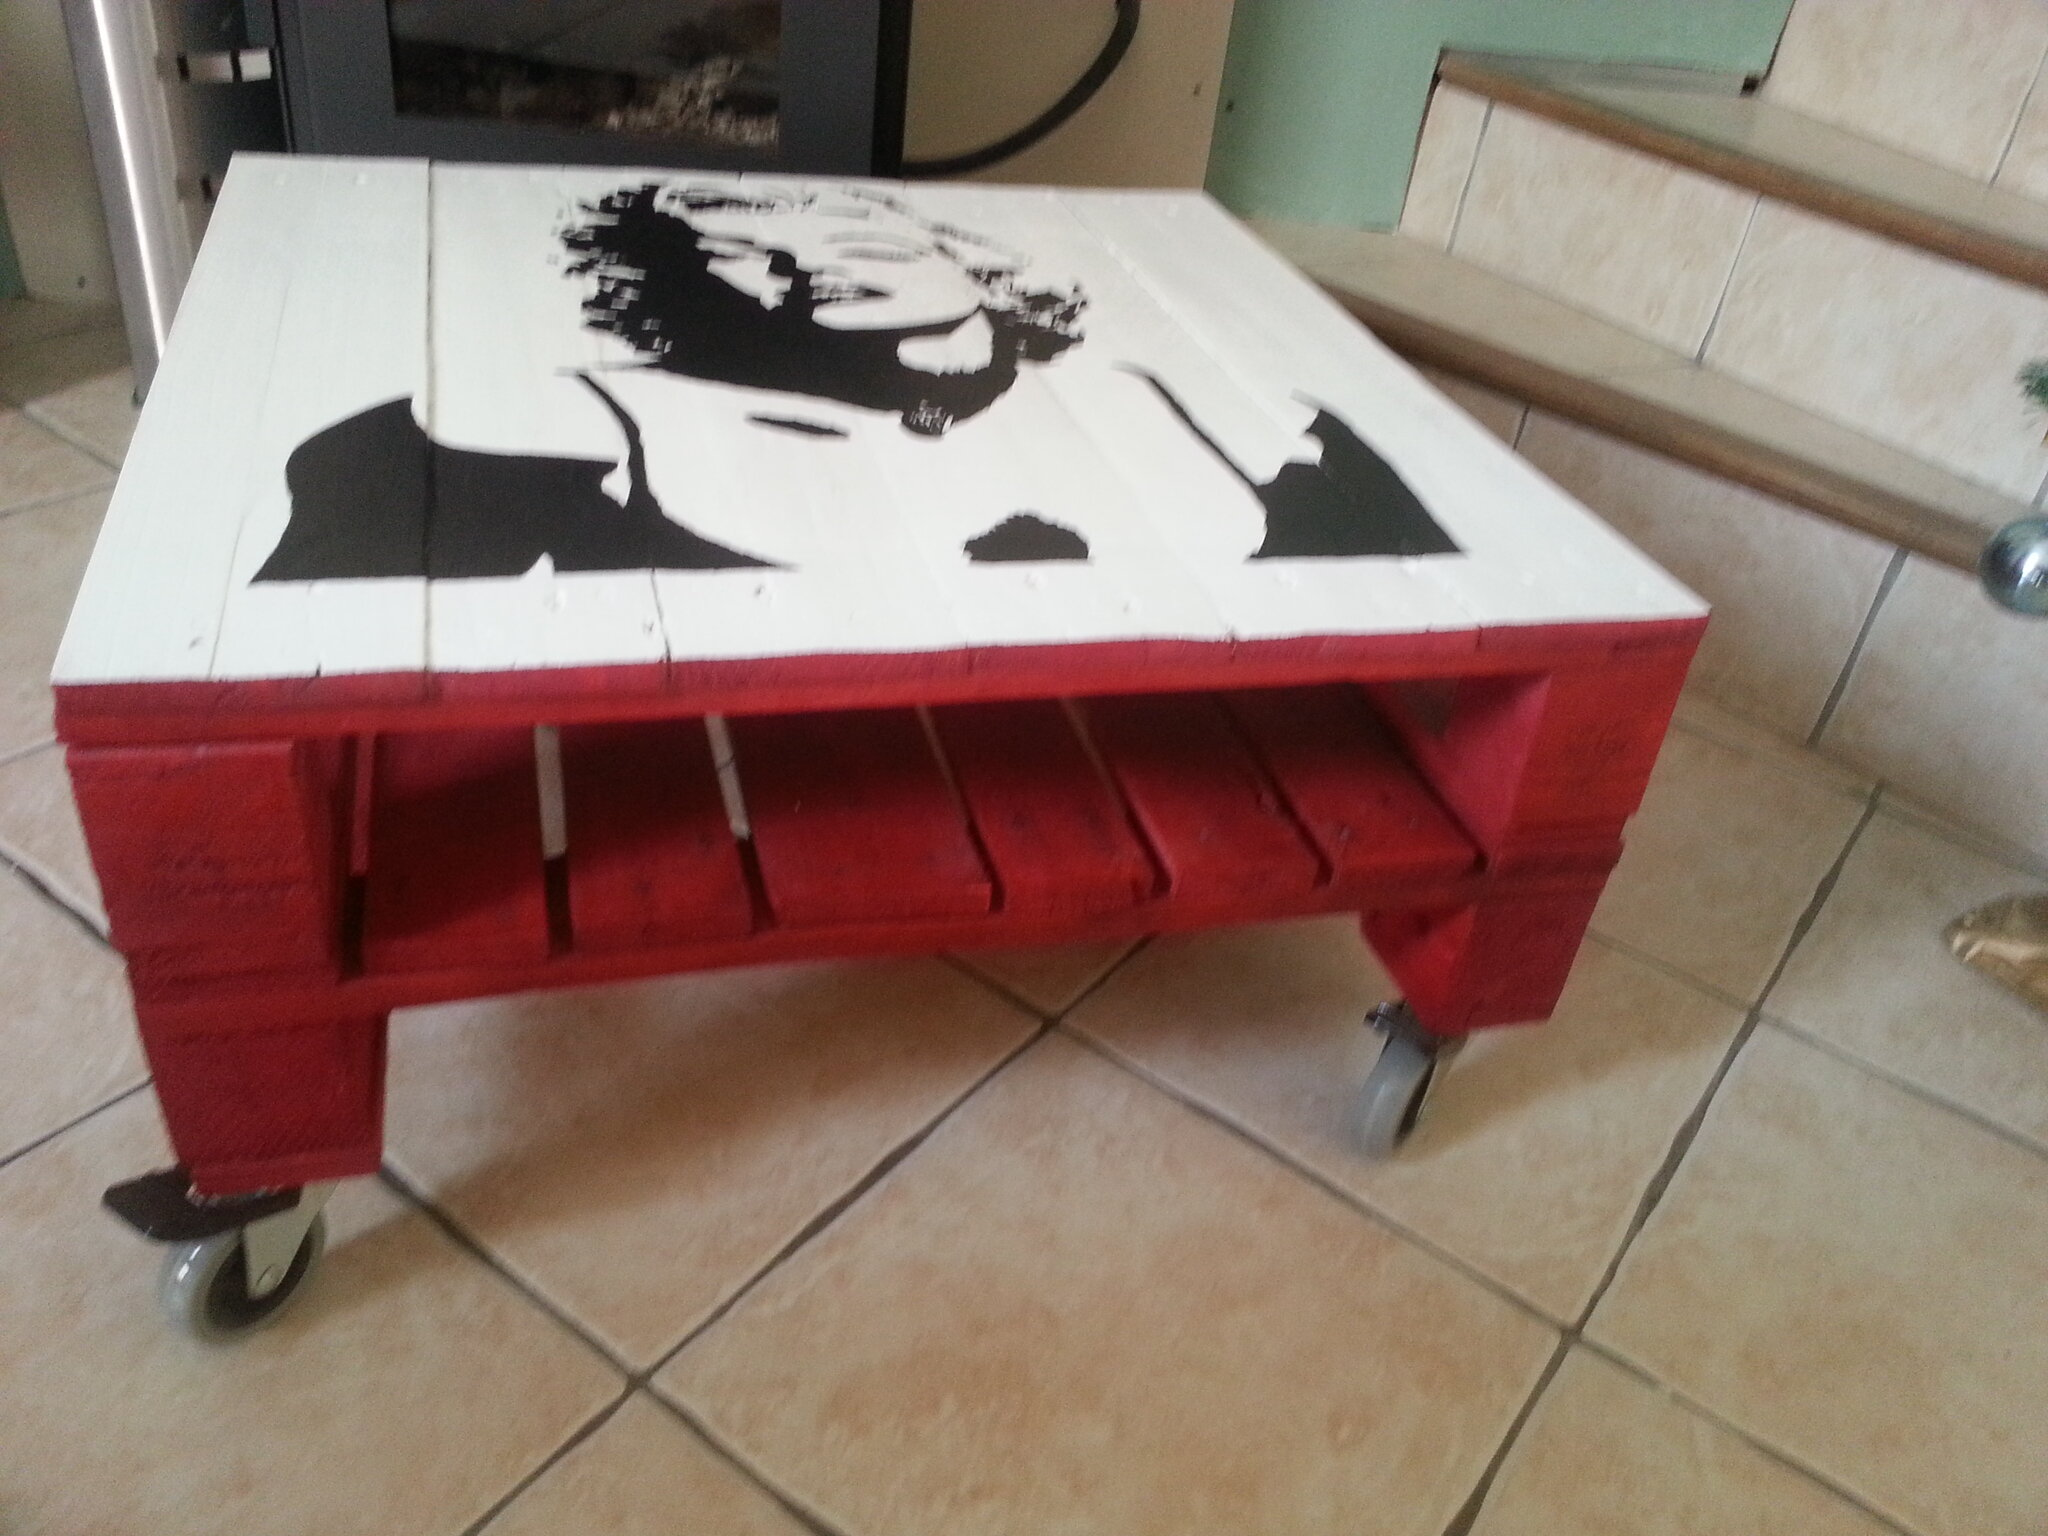 Table basse marylin monroe en palette en bois r cup 39 art d co - Table en palette bois ...